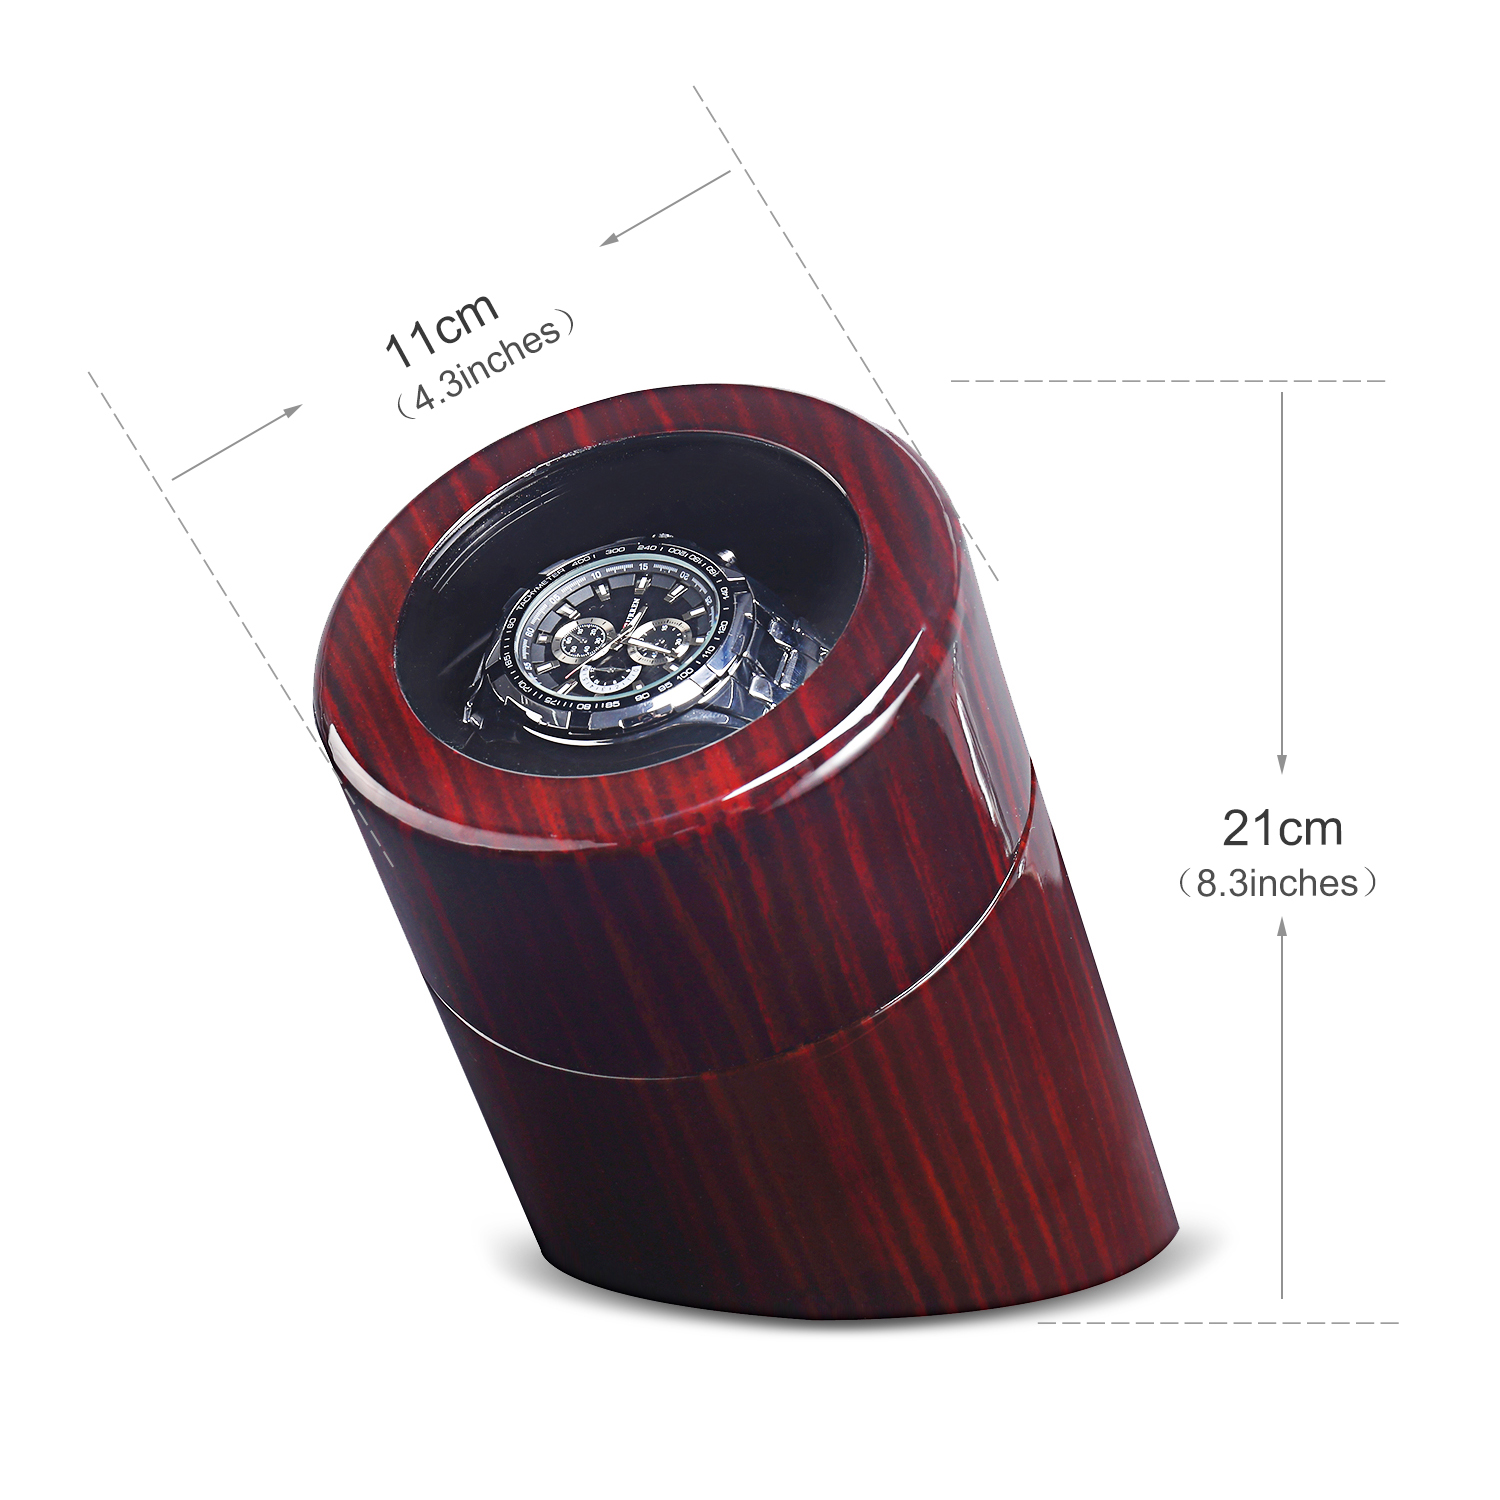 PPS1 single watch winder